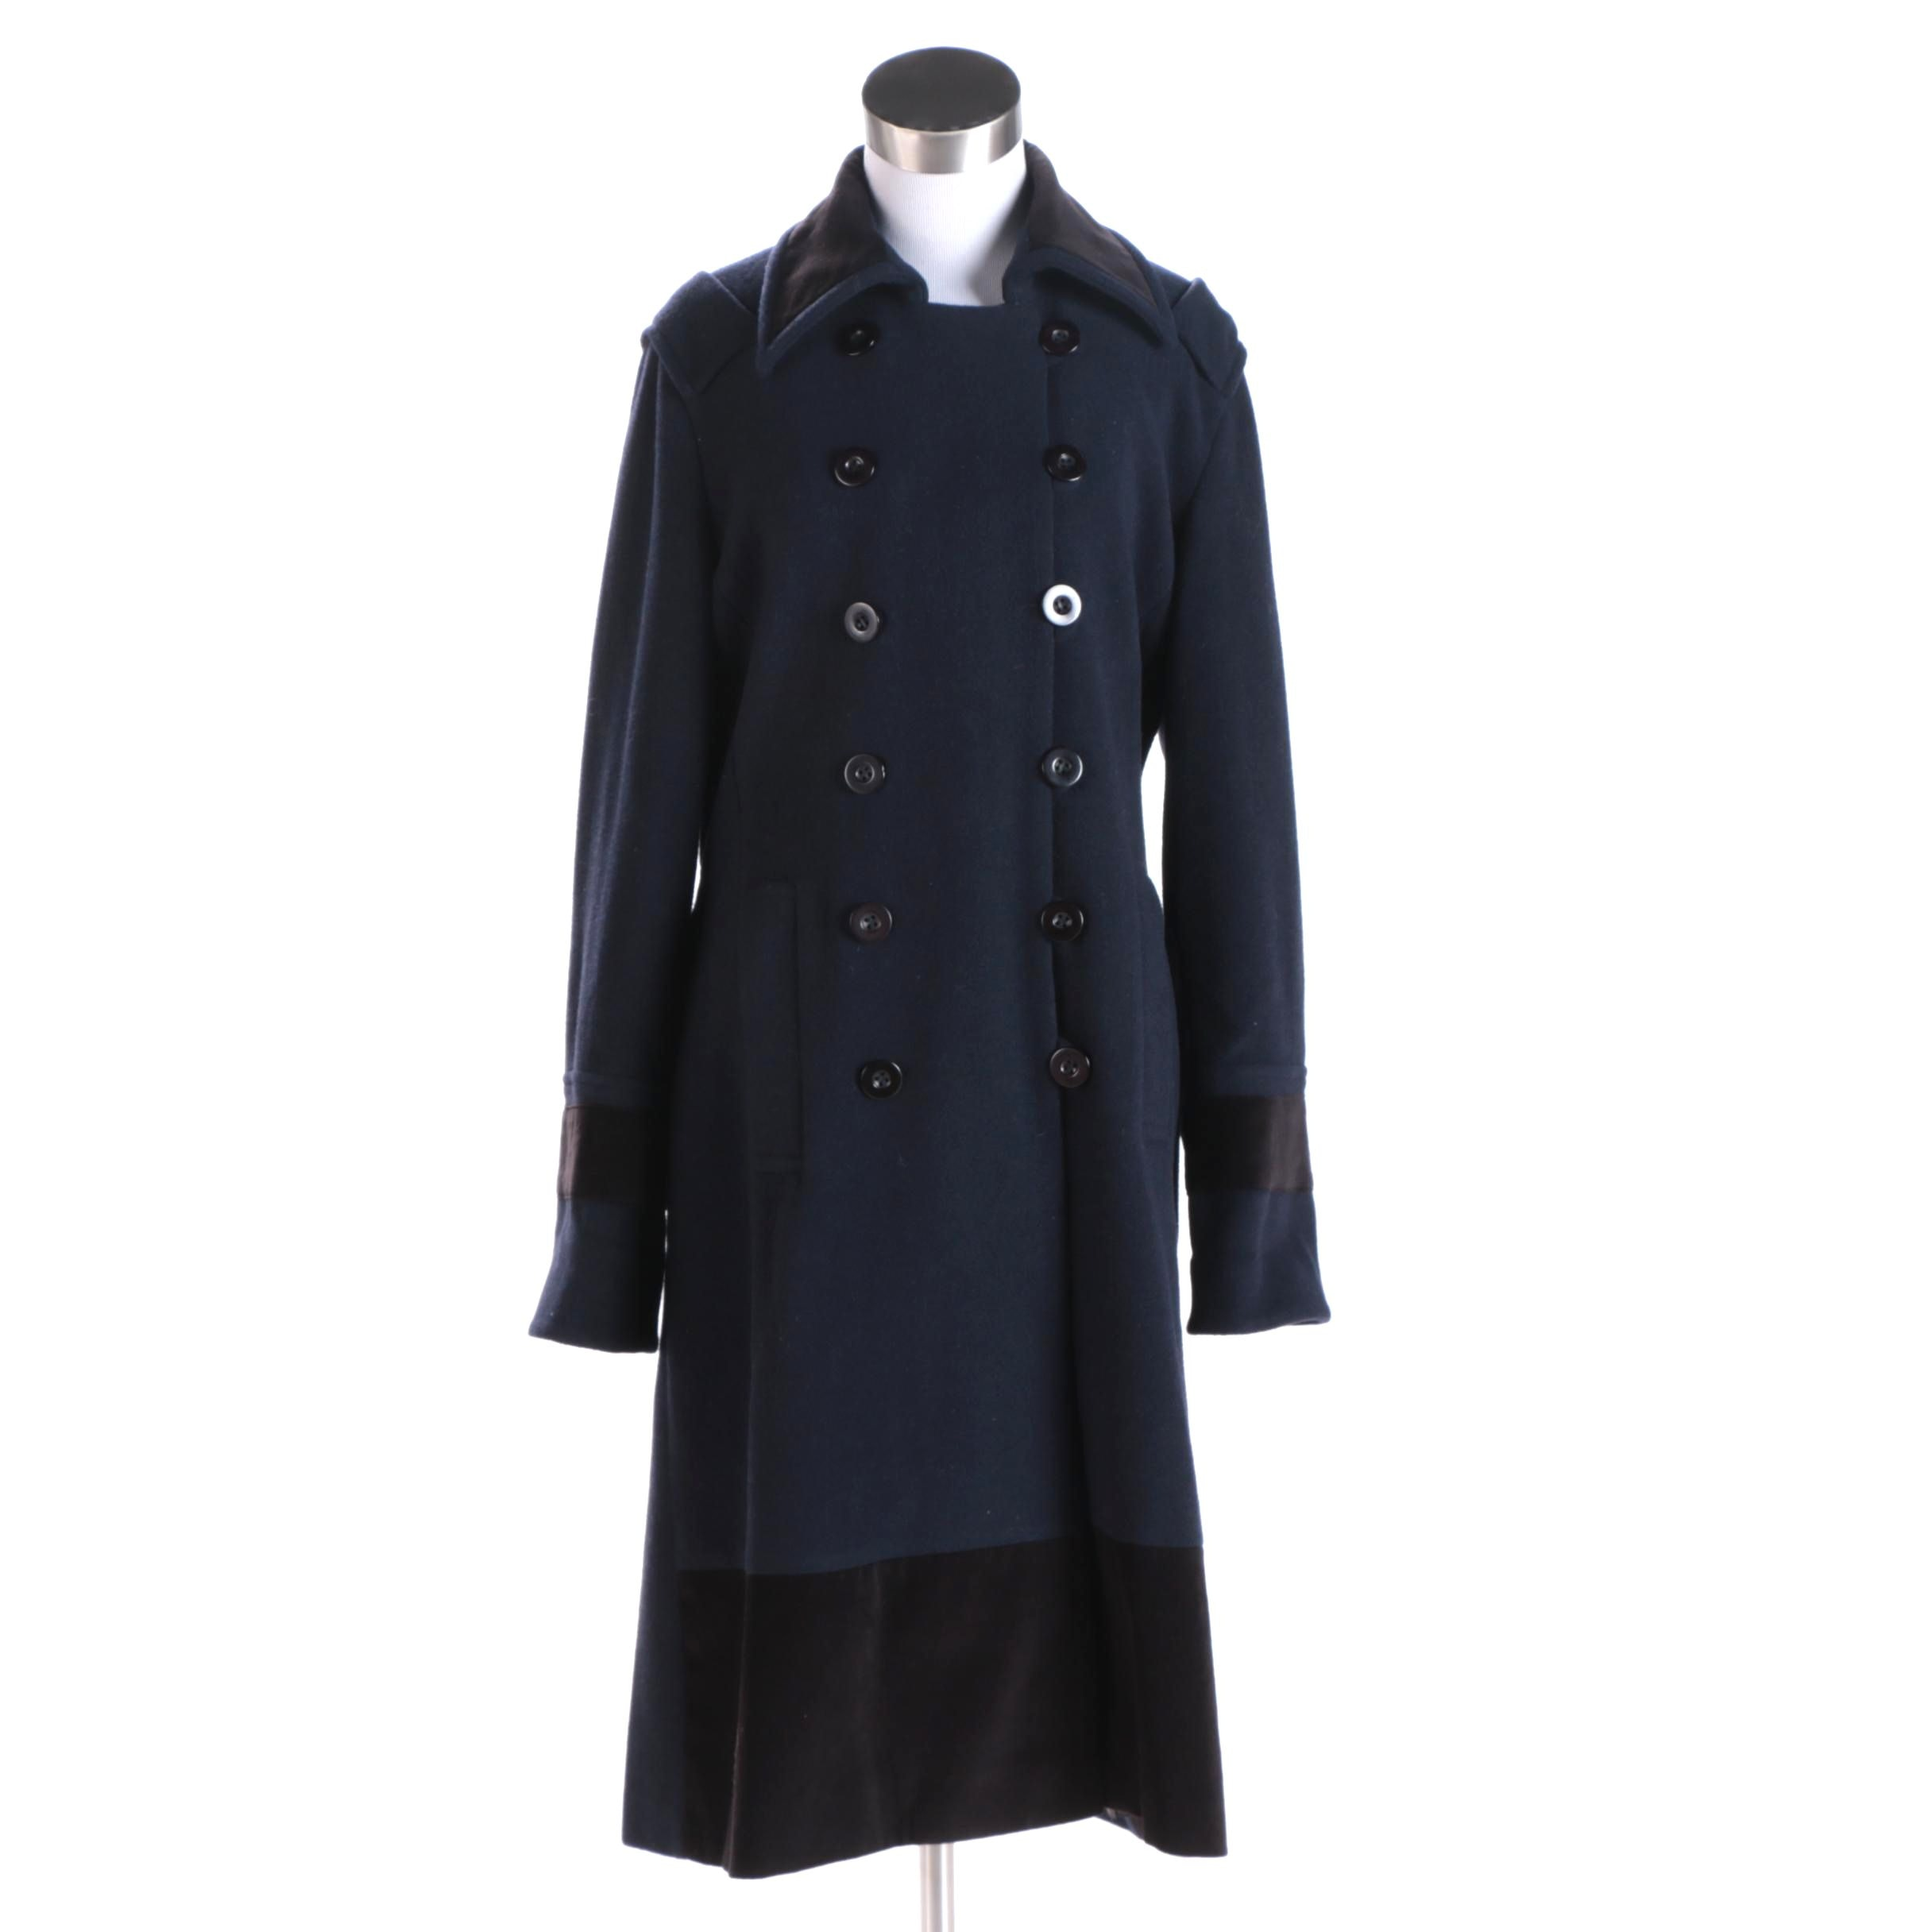 Women's Chloé Navy and Black Wool Double-Breasted Coat